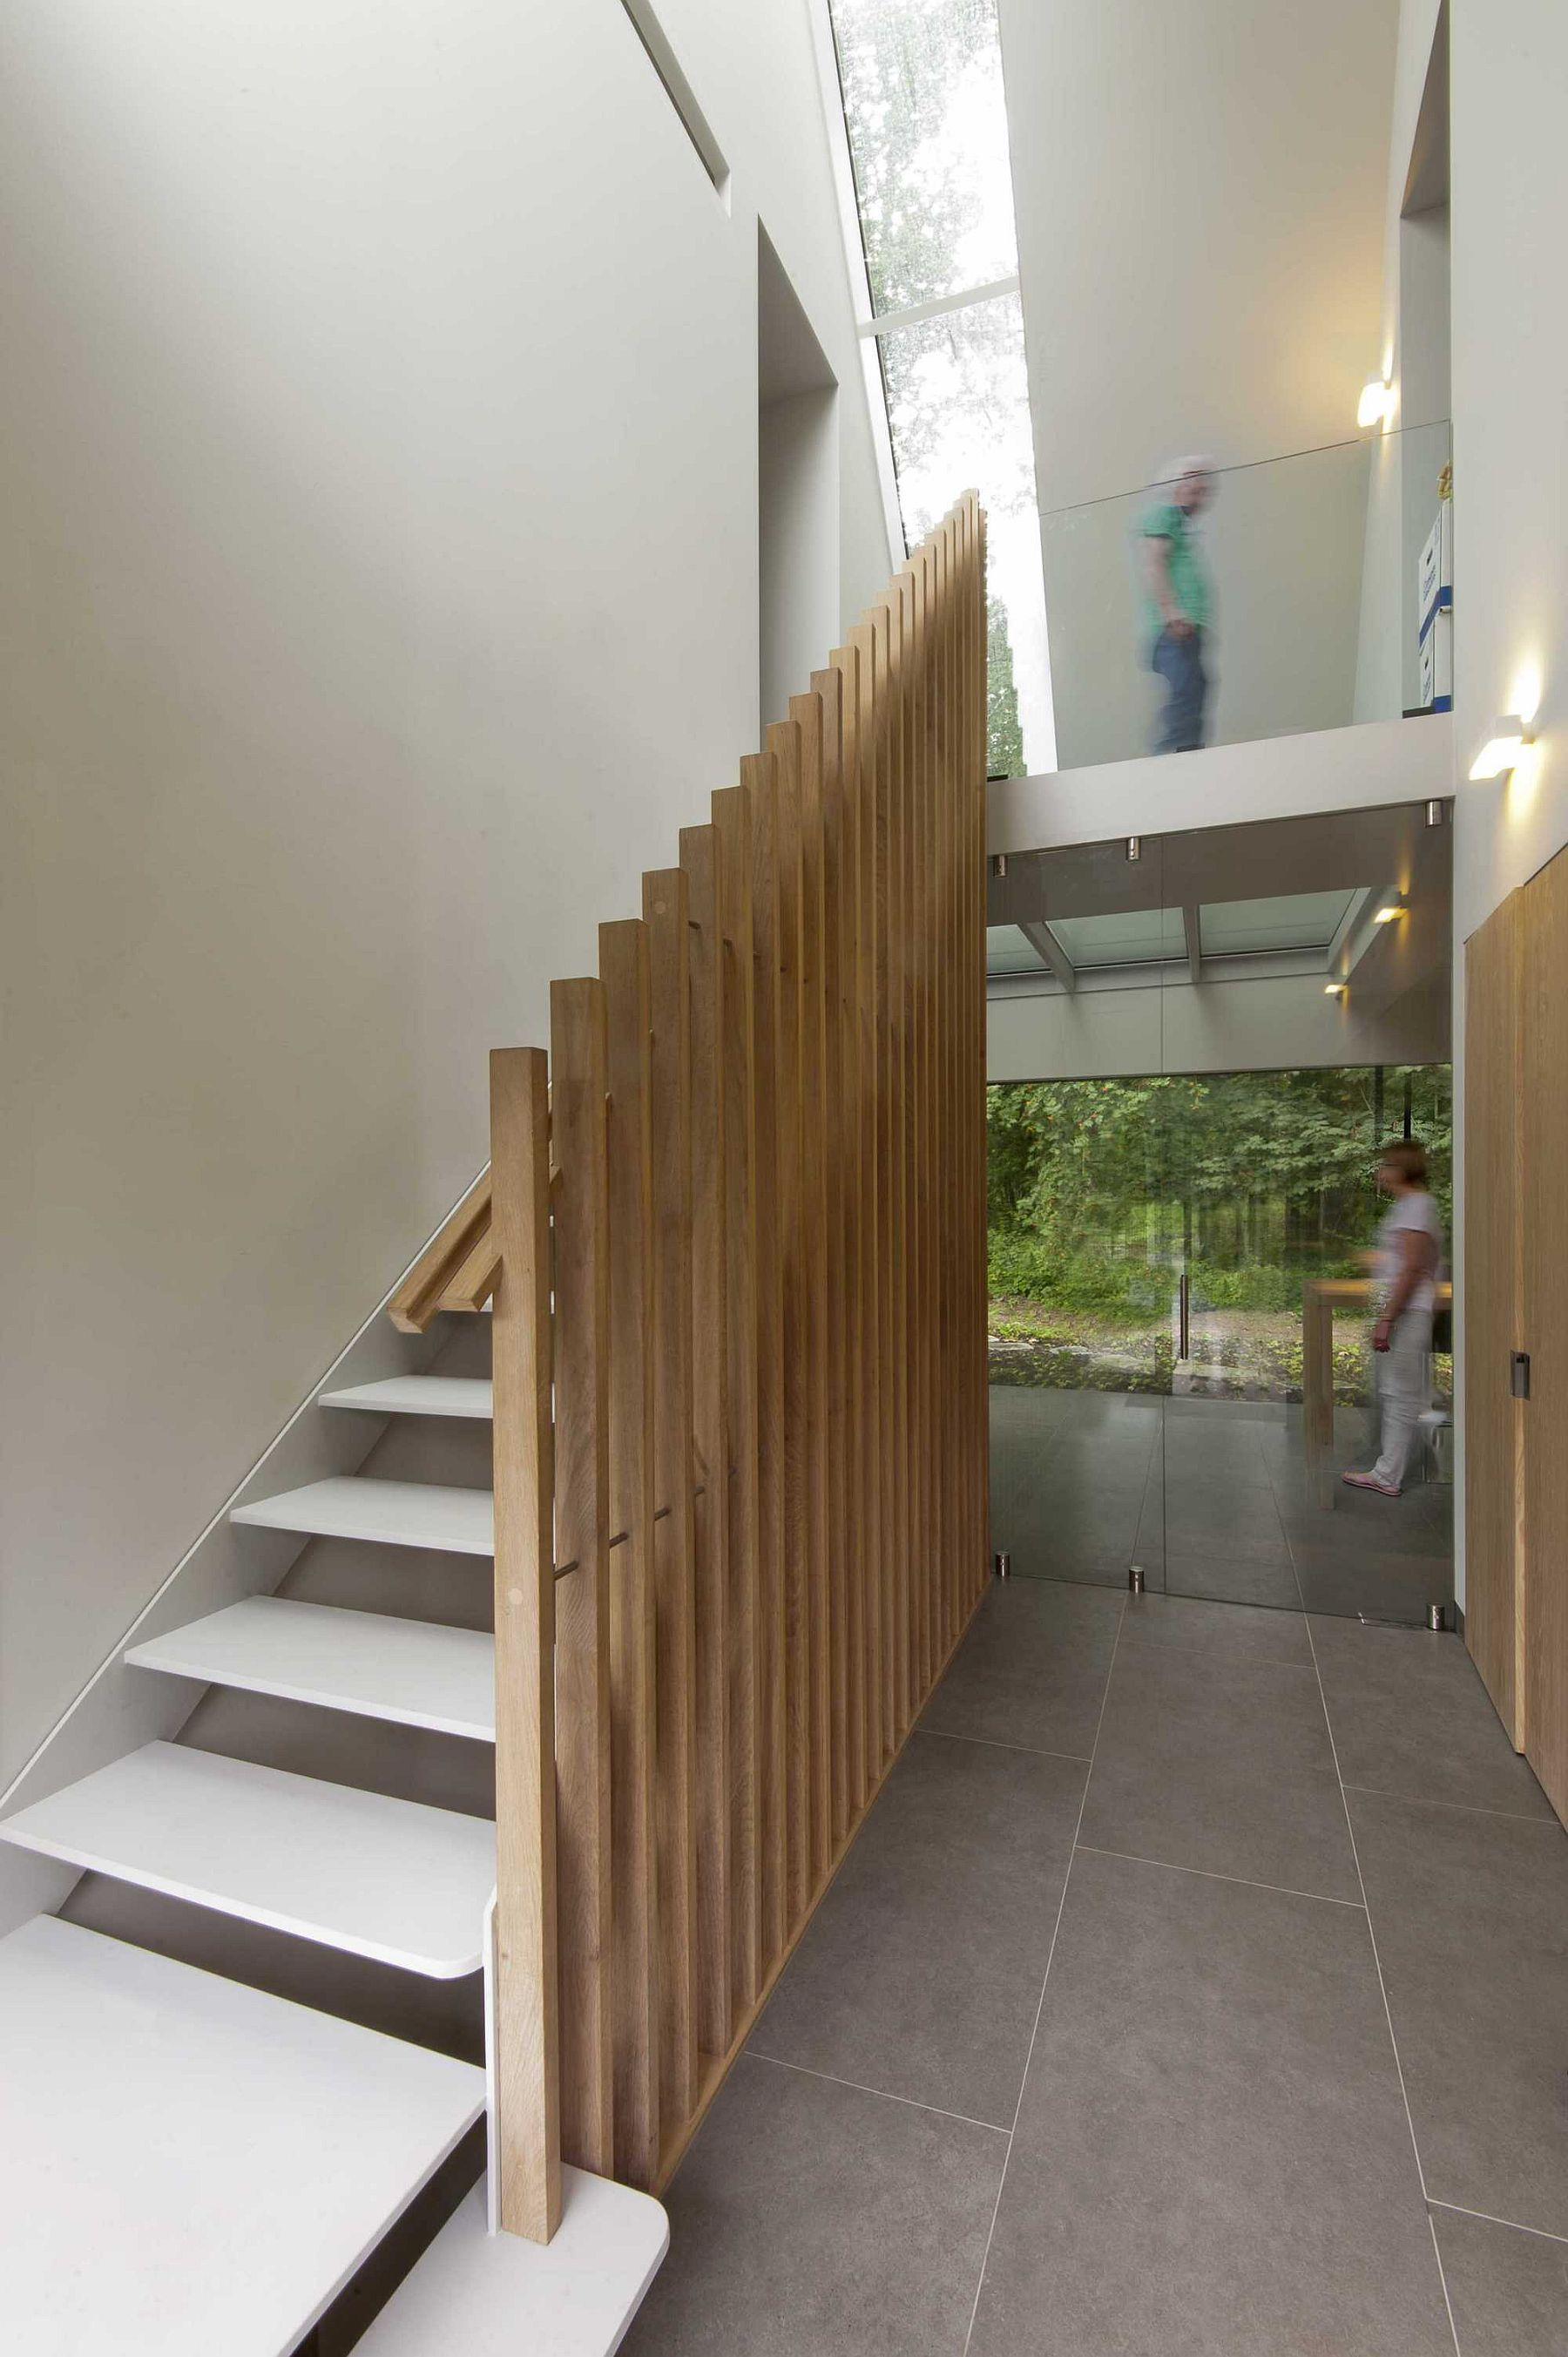 Modified wooden slats used as railing for staircase inside the house